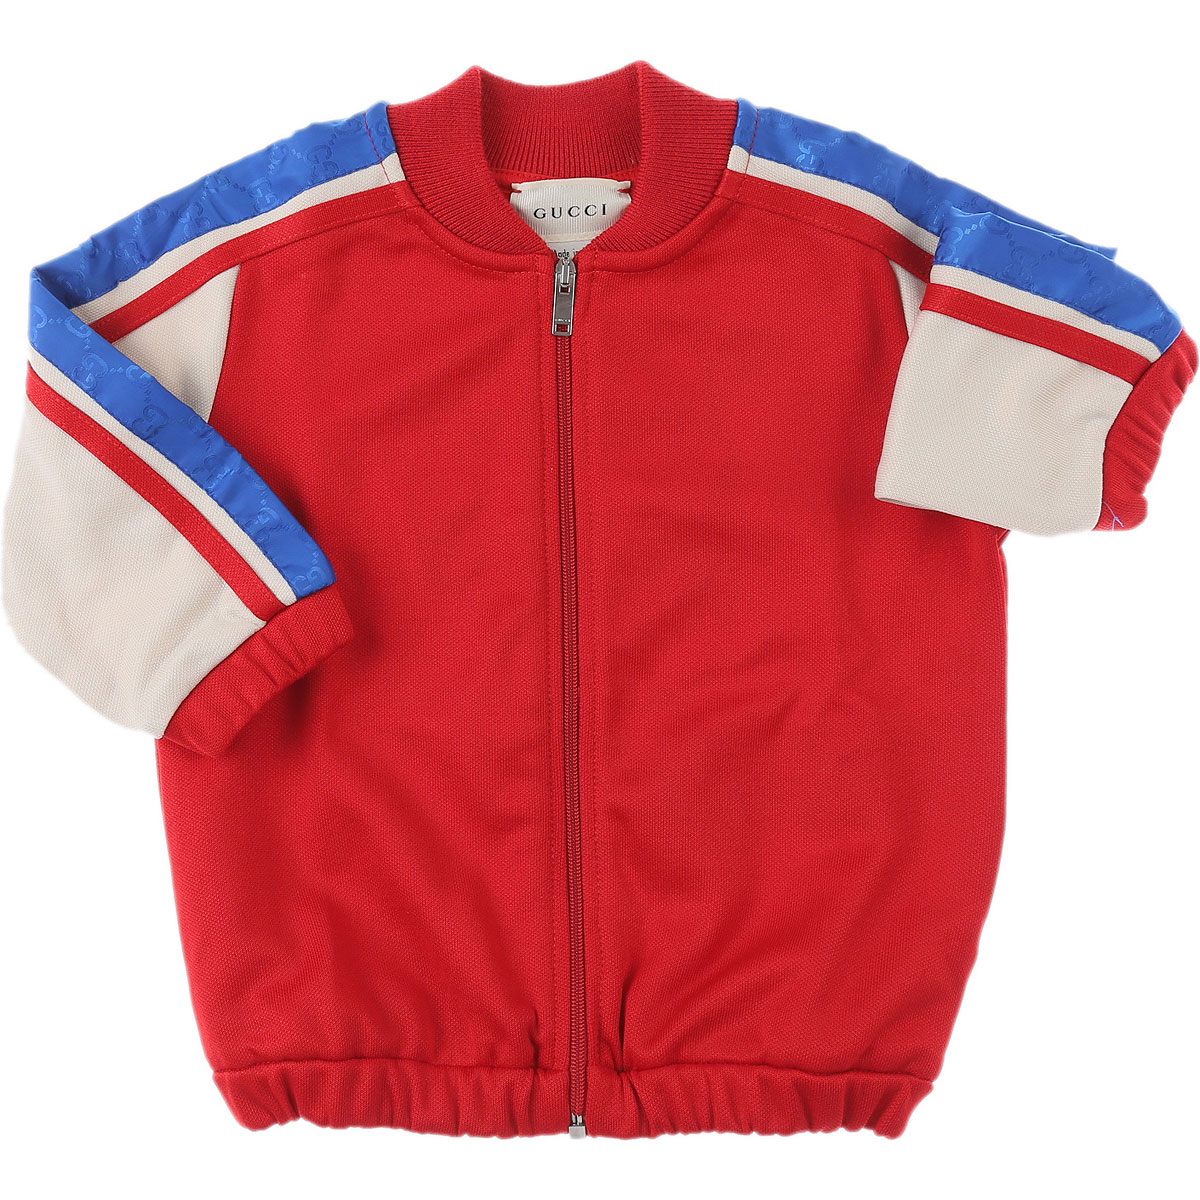 Gucci Baby Sweatshirts & Hoodies for Boys On Sale, Red, polyester, 2019, 3Y 6M 9M